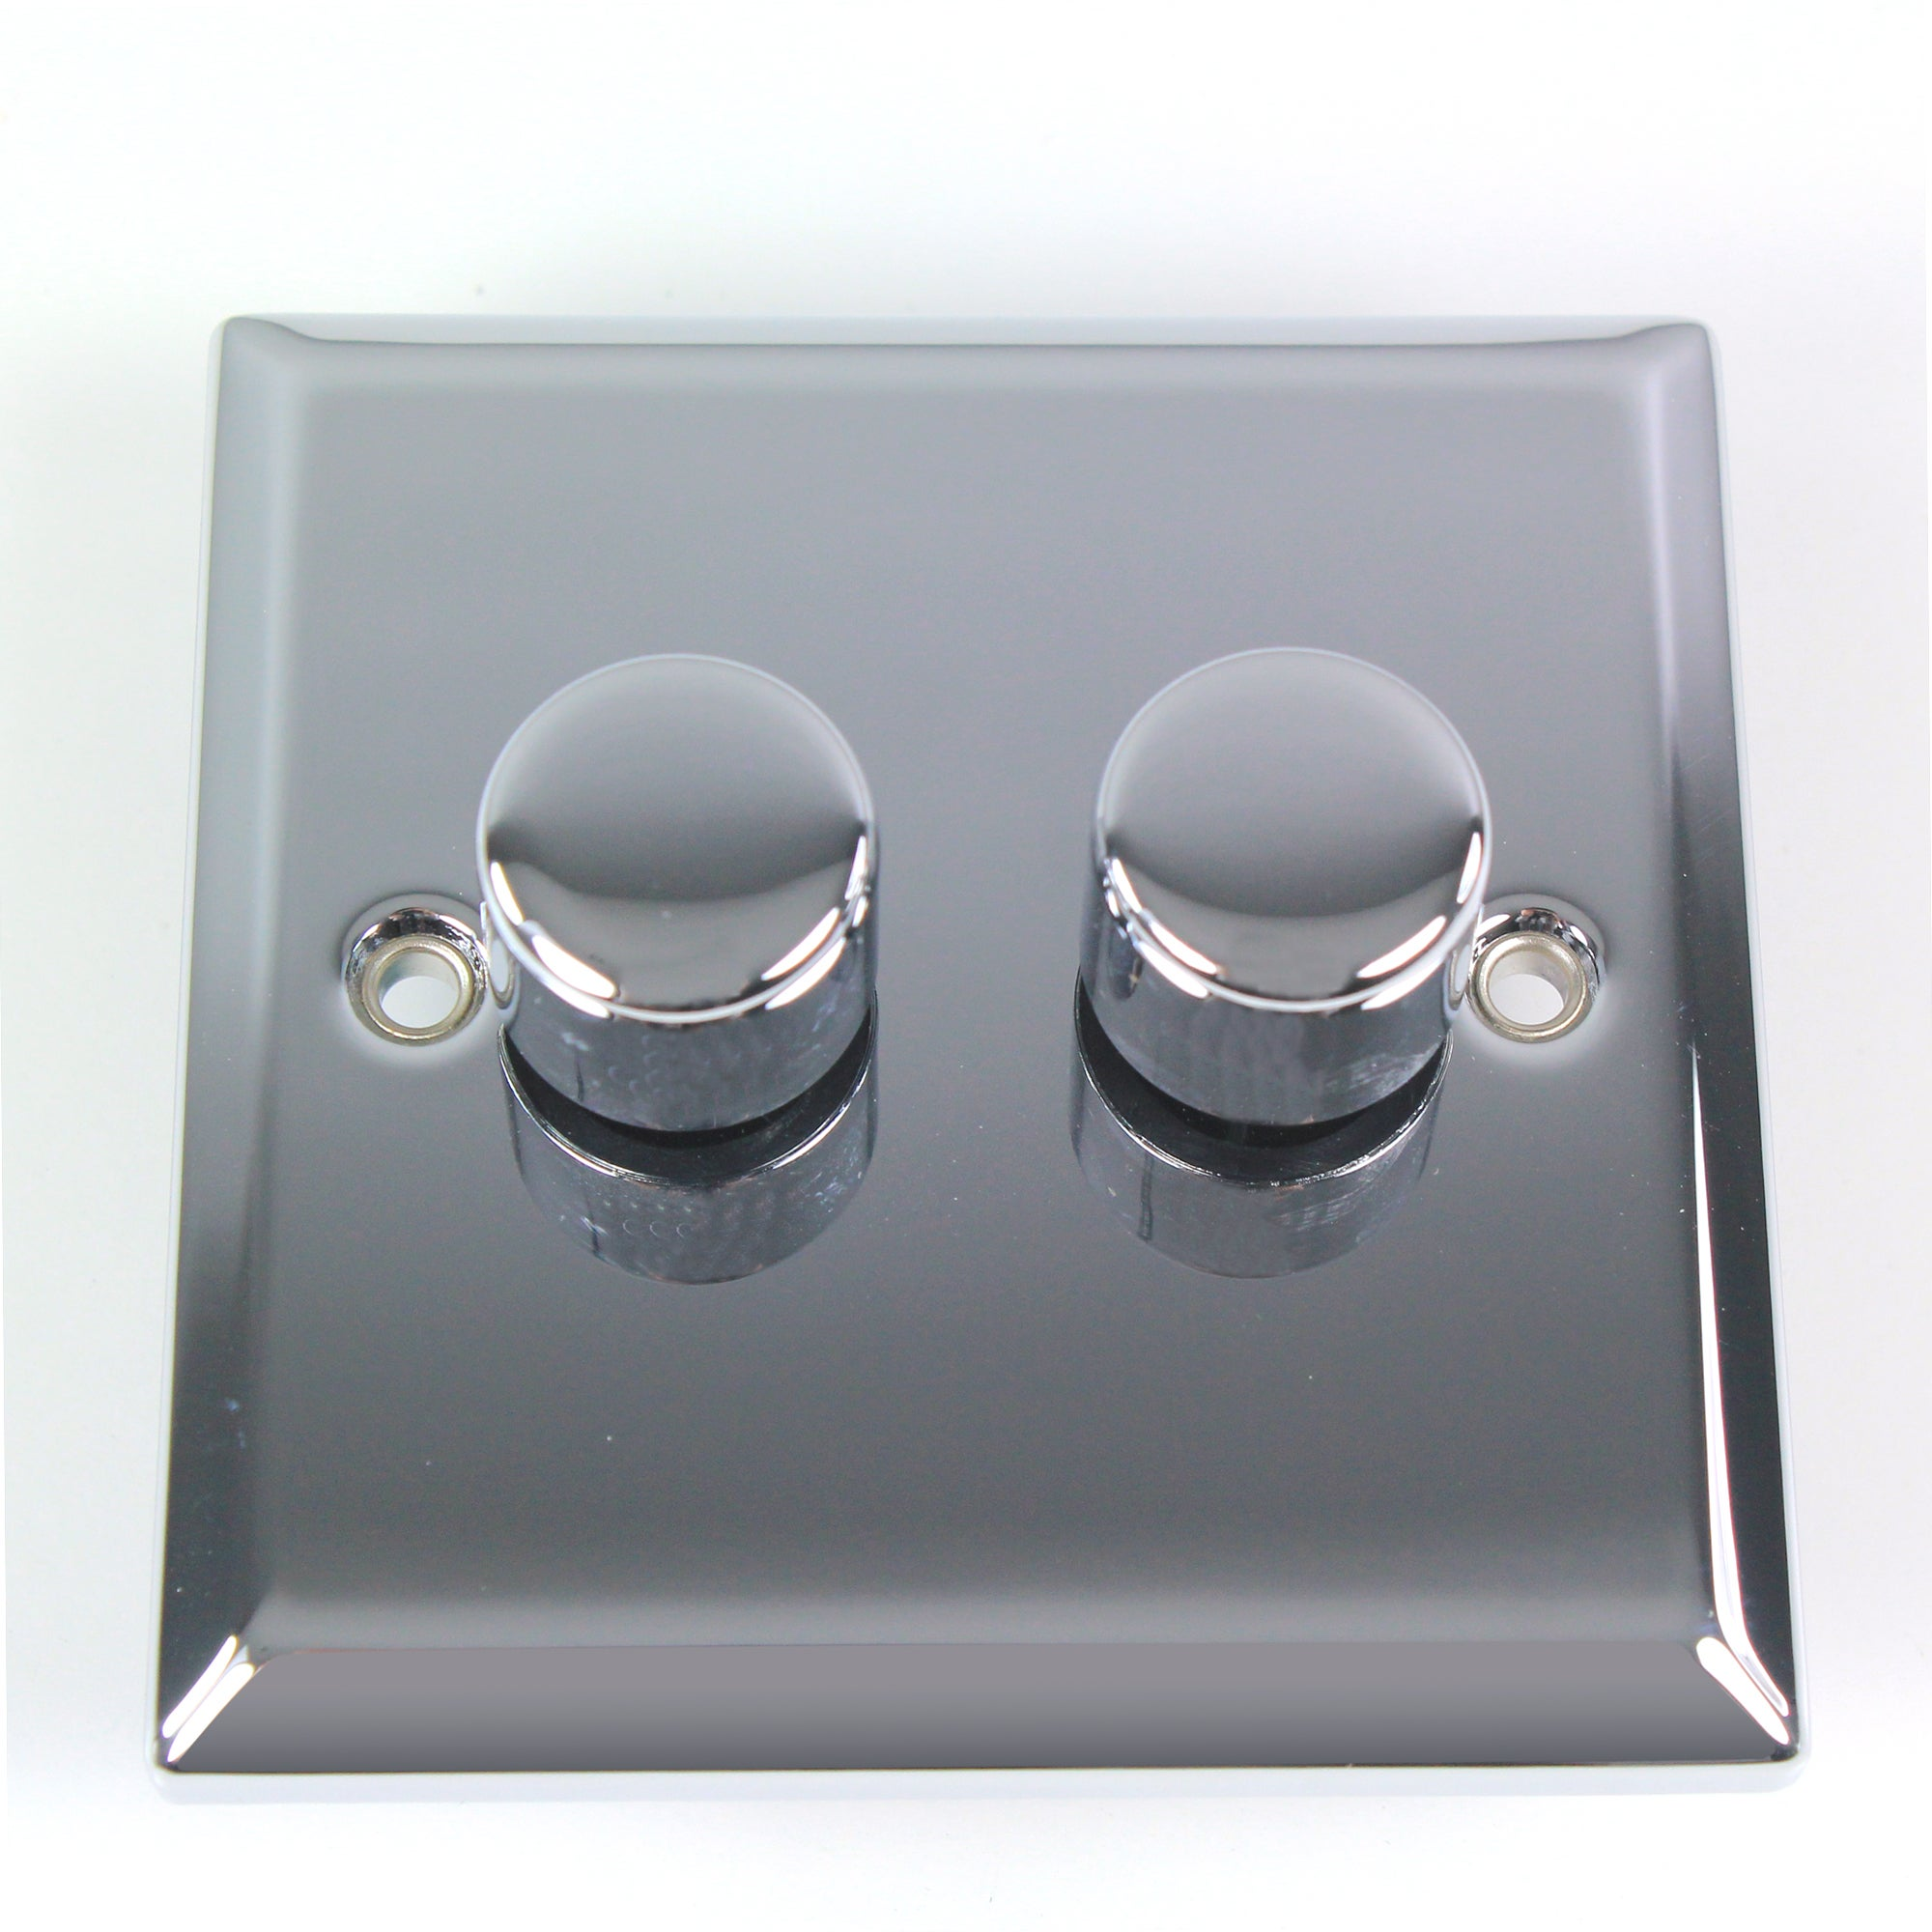 2 Gang 2 Way Chrome Dimmer Switch